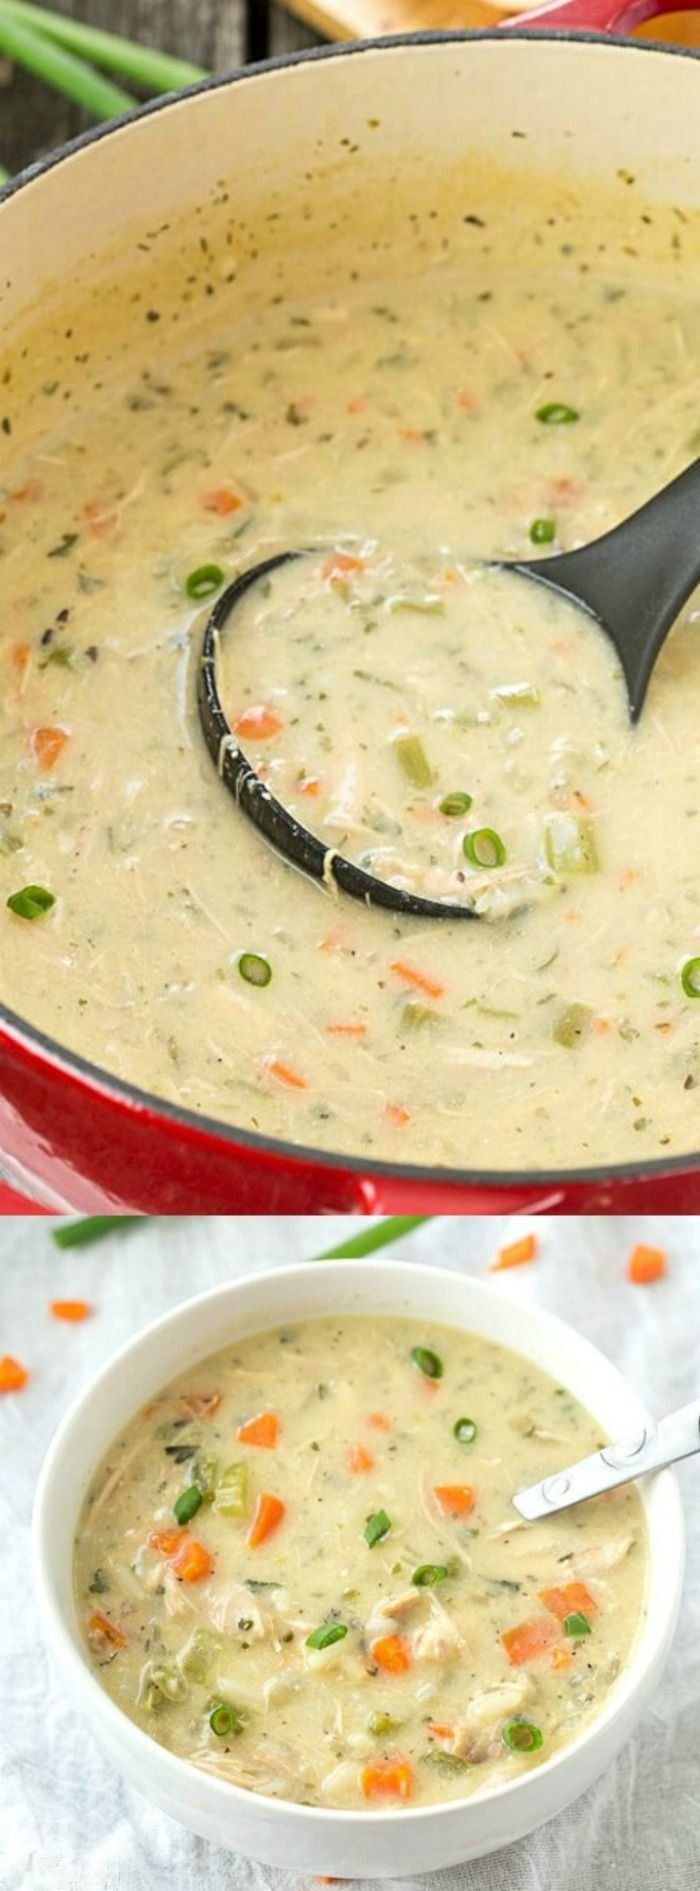 This Copycat Panera Chicken and Wild Rice Soup from Gal on a Mission is seriously the best soup EVER! It's creamy, flavorful, filling and uses simple ingredients that you probably already have in your kitchen.